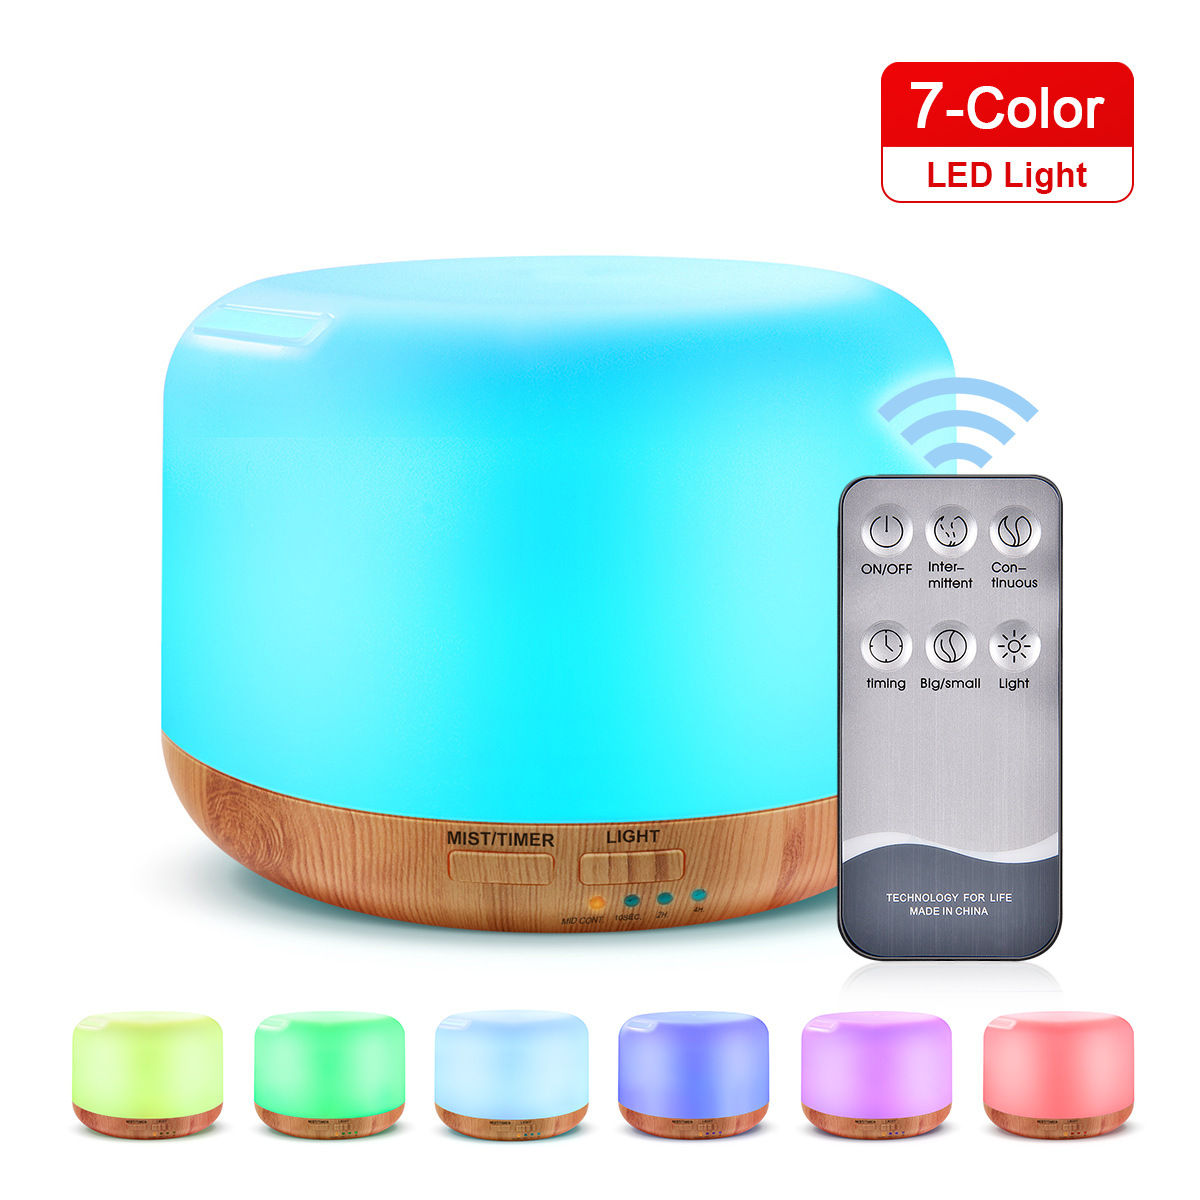 300ml Remote Control Wood Grain Household Fragrance Lamp Ultrasonic Mute Humidifier Light wood grain remote control_US Plug